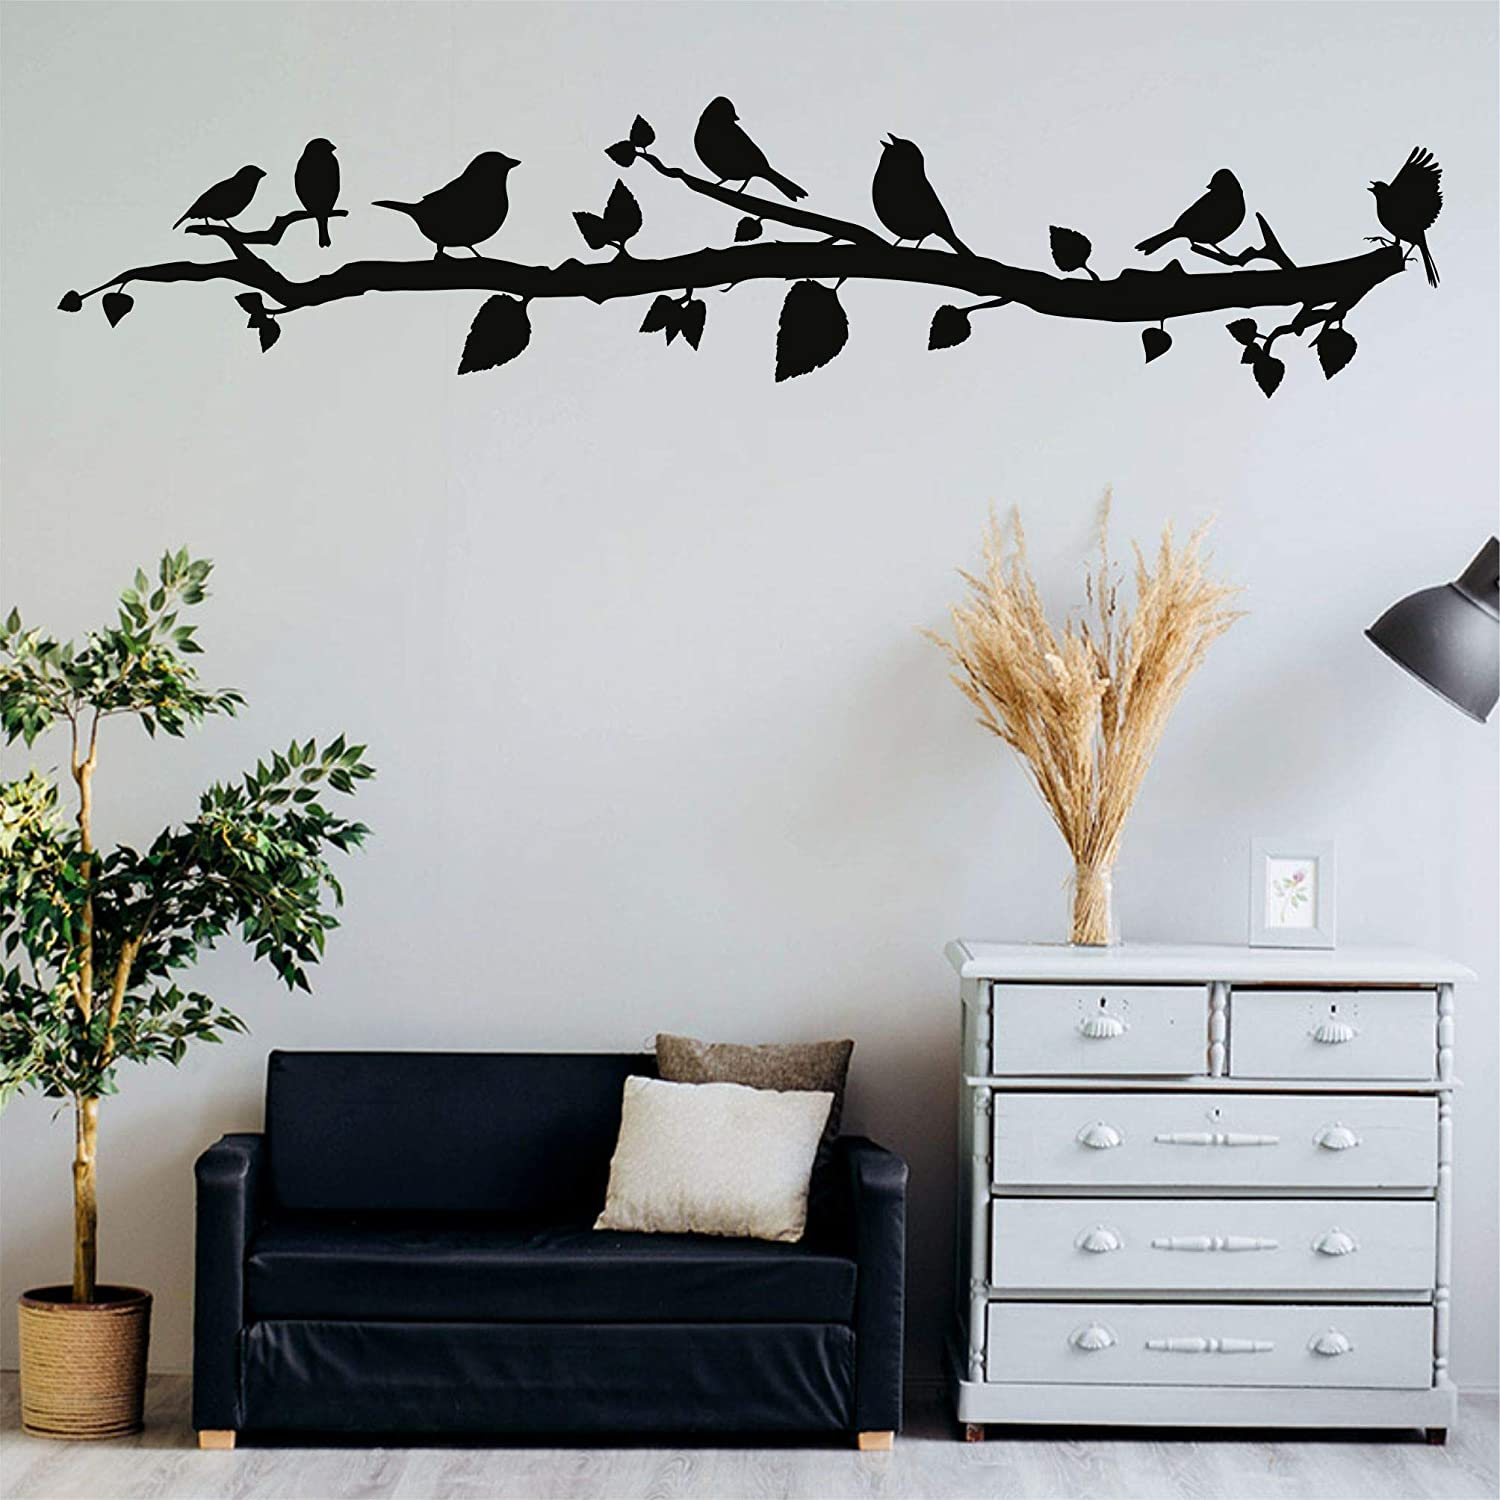 "Metal Wall Decor, Birds on Branch, Metal Birds, Birds Sign Wall Art, Living Room Wall Art, Wall Hangings (47""W x 10""H / 118x26cm)"